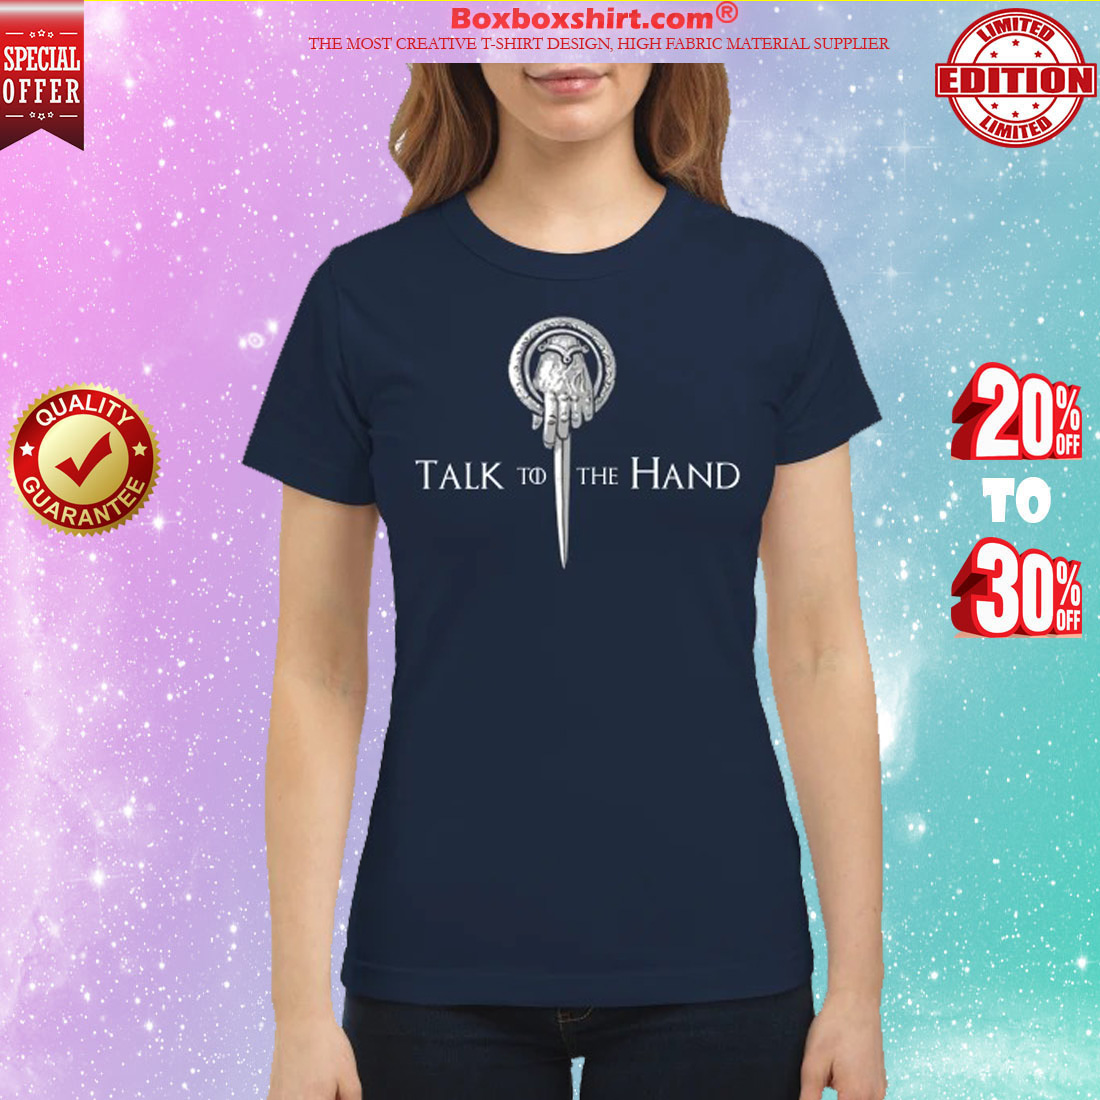 Game of Thrones talk to the hand classic shirt